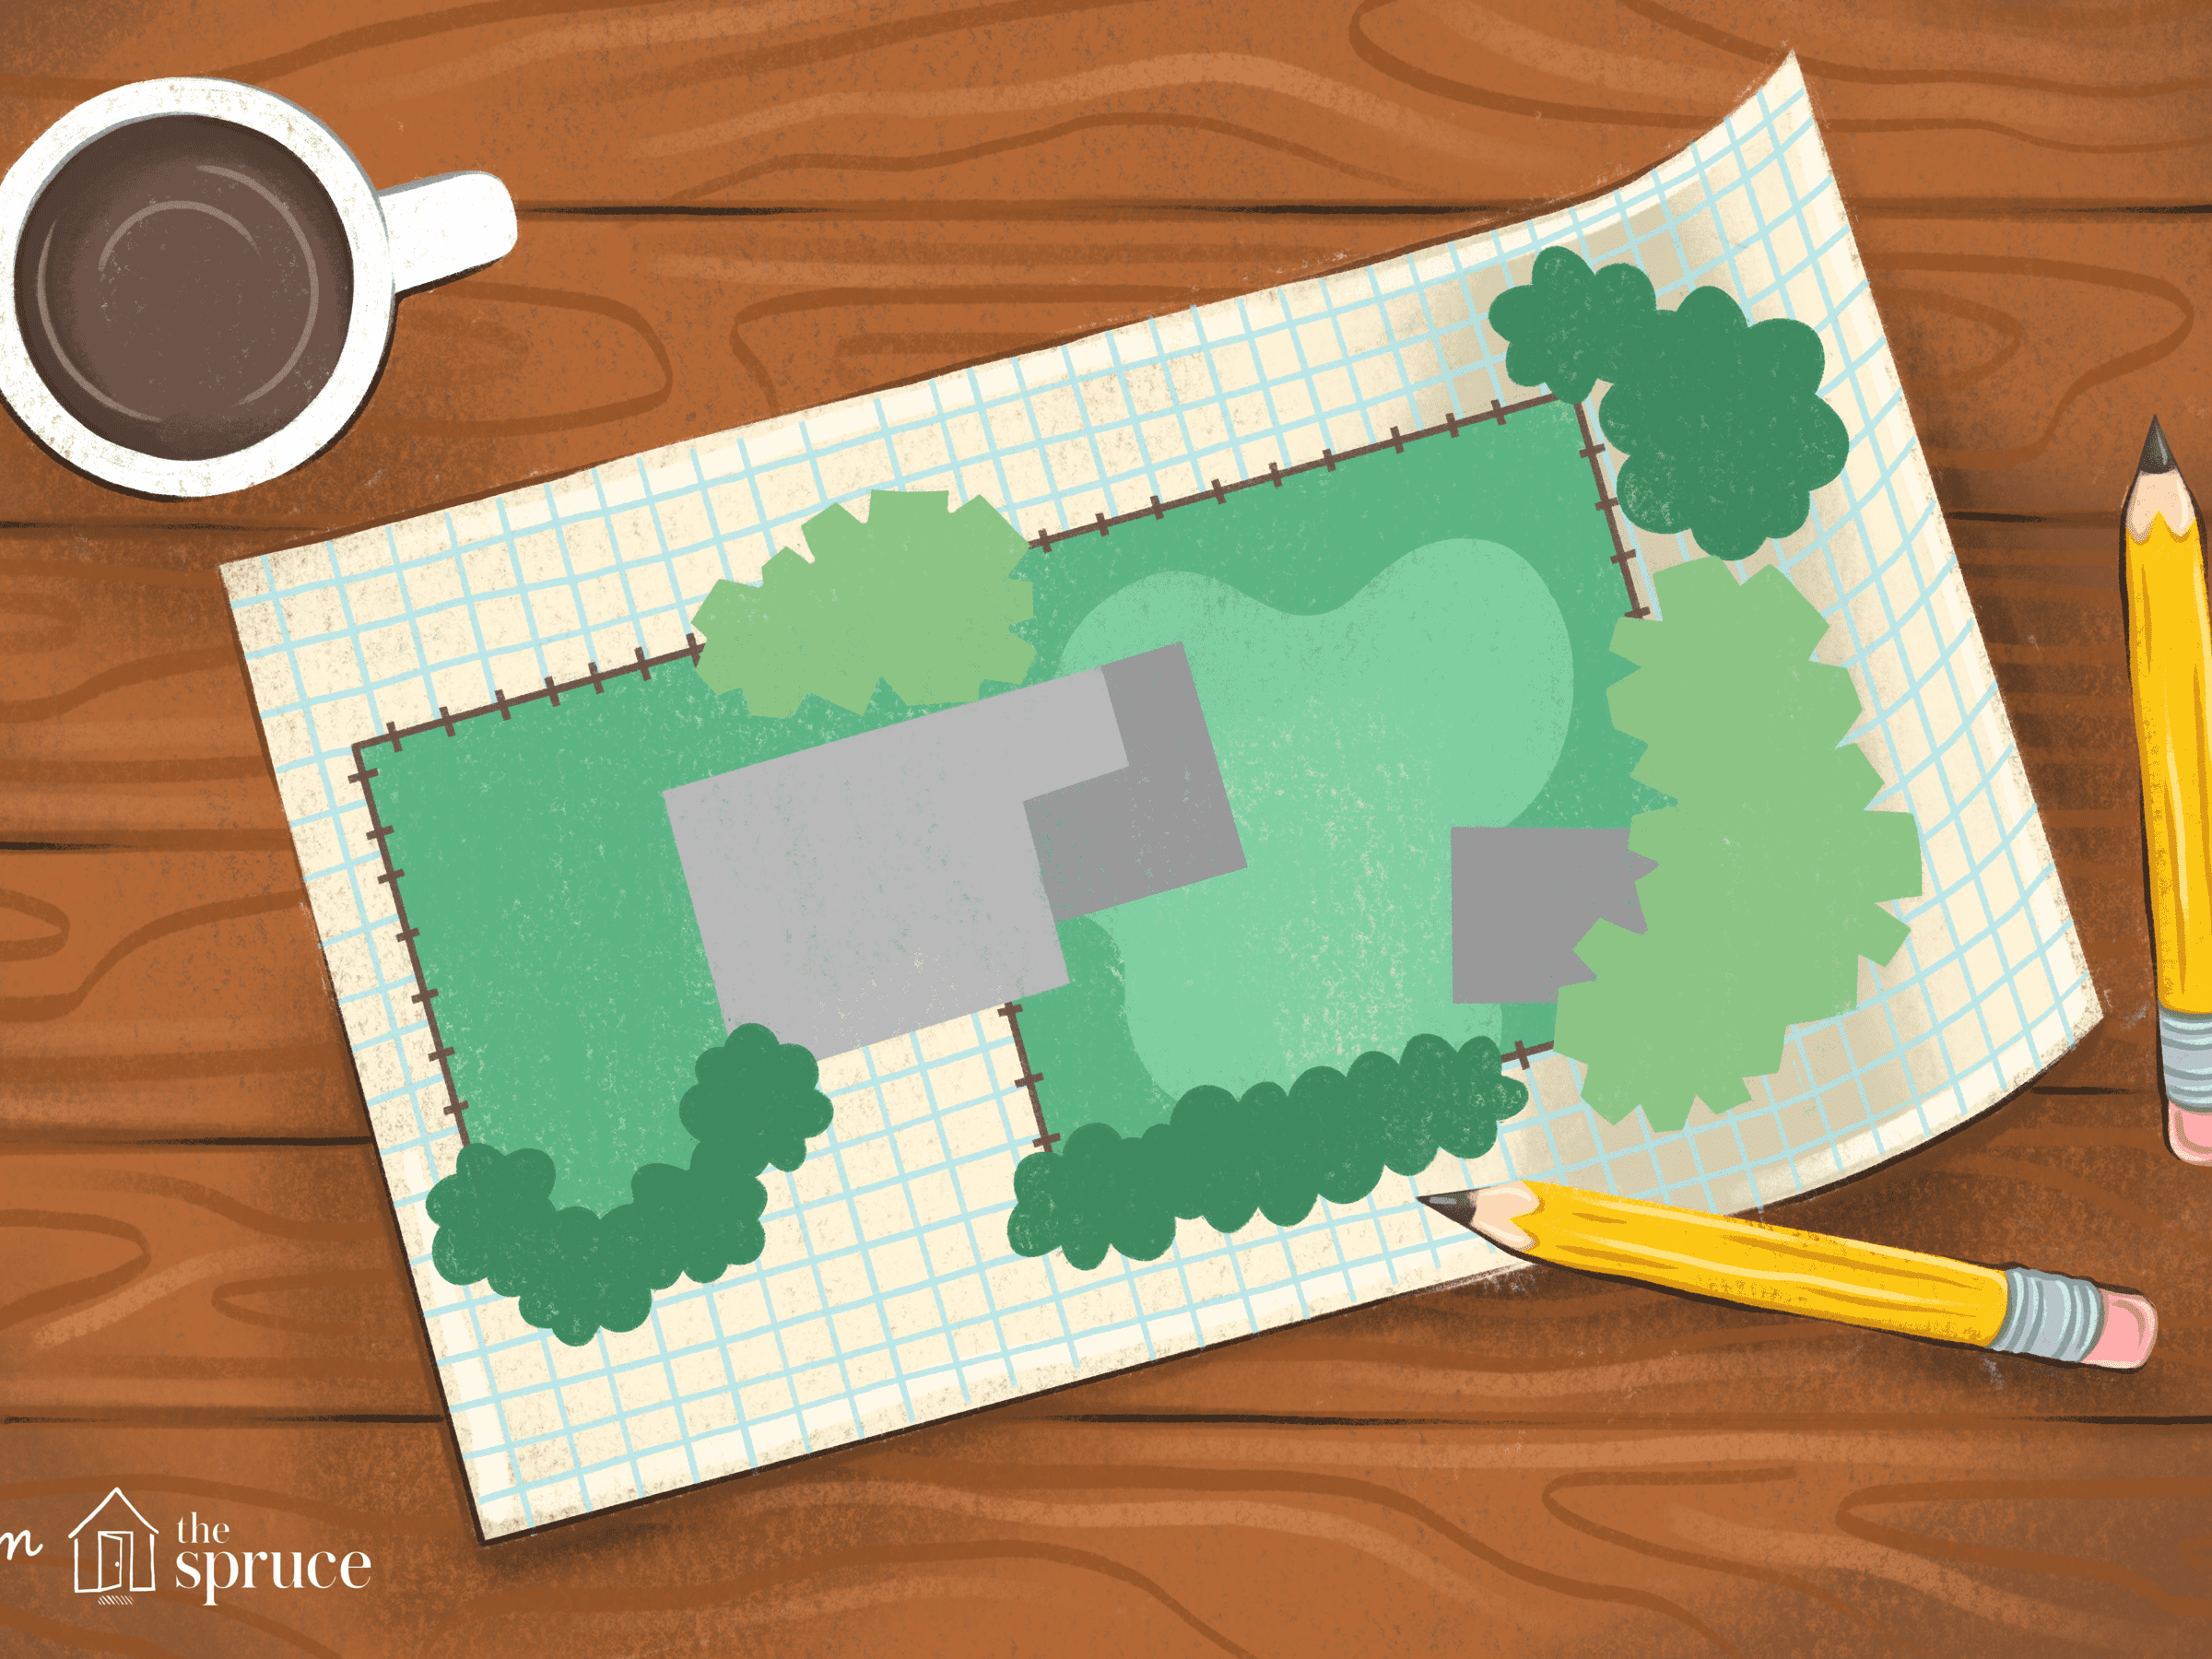 How To Draw Landscape Plans Help For Beginning Diy Ers